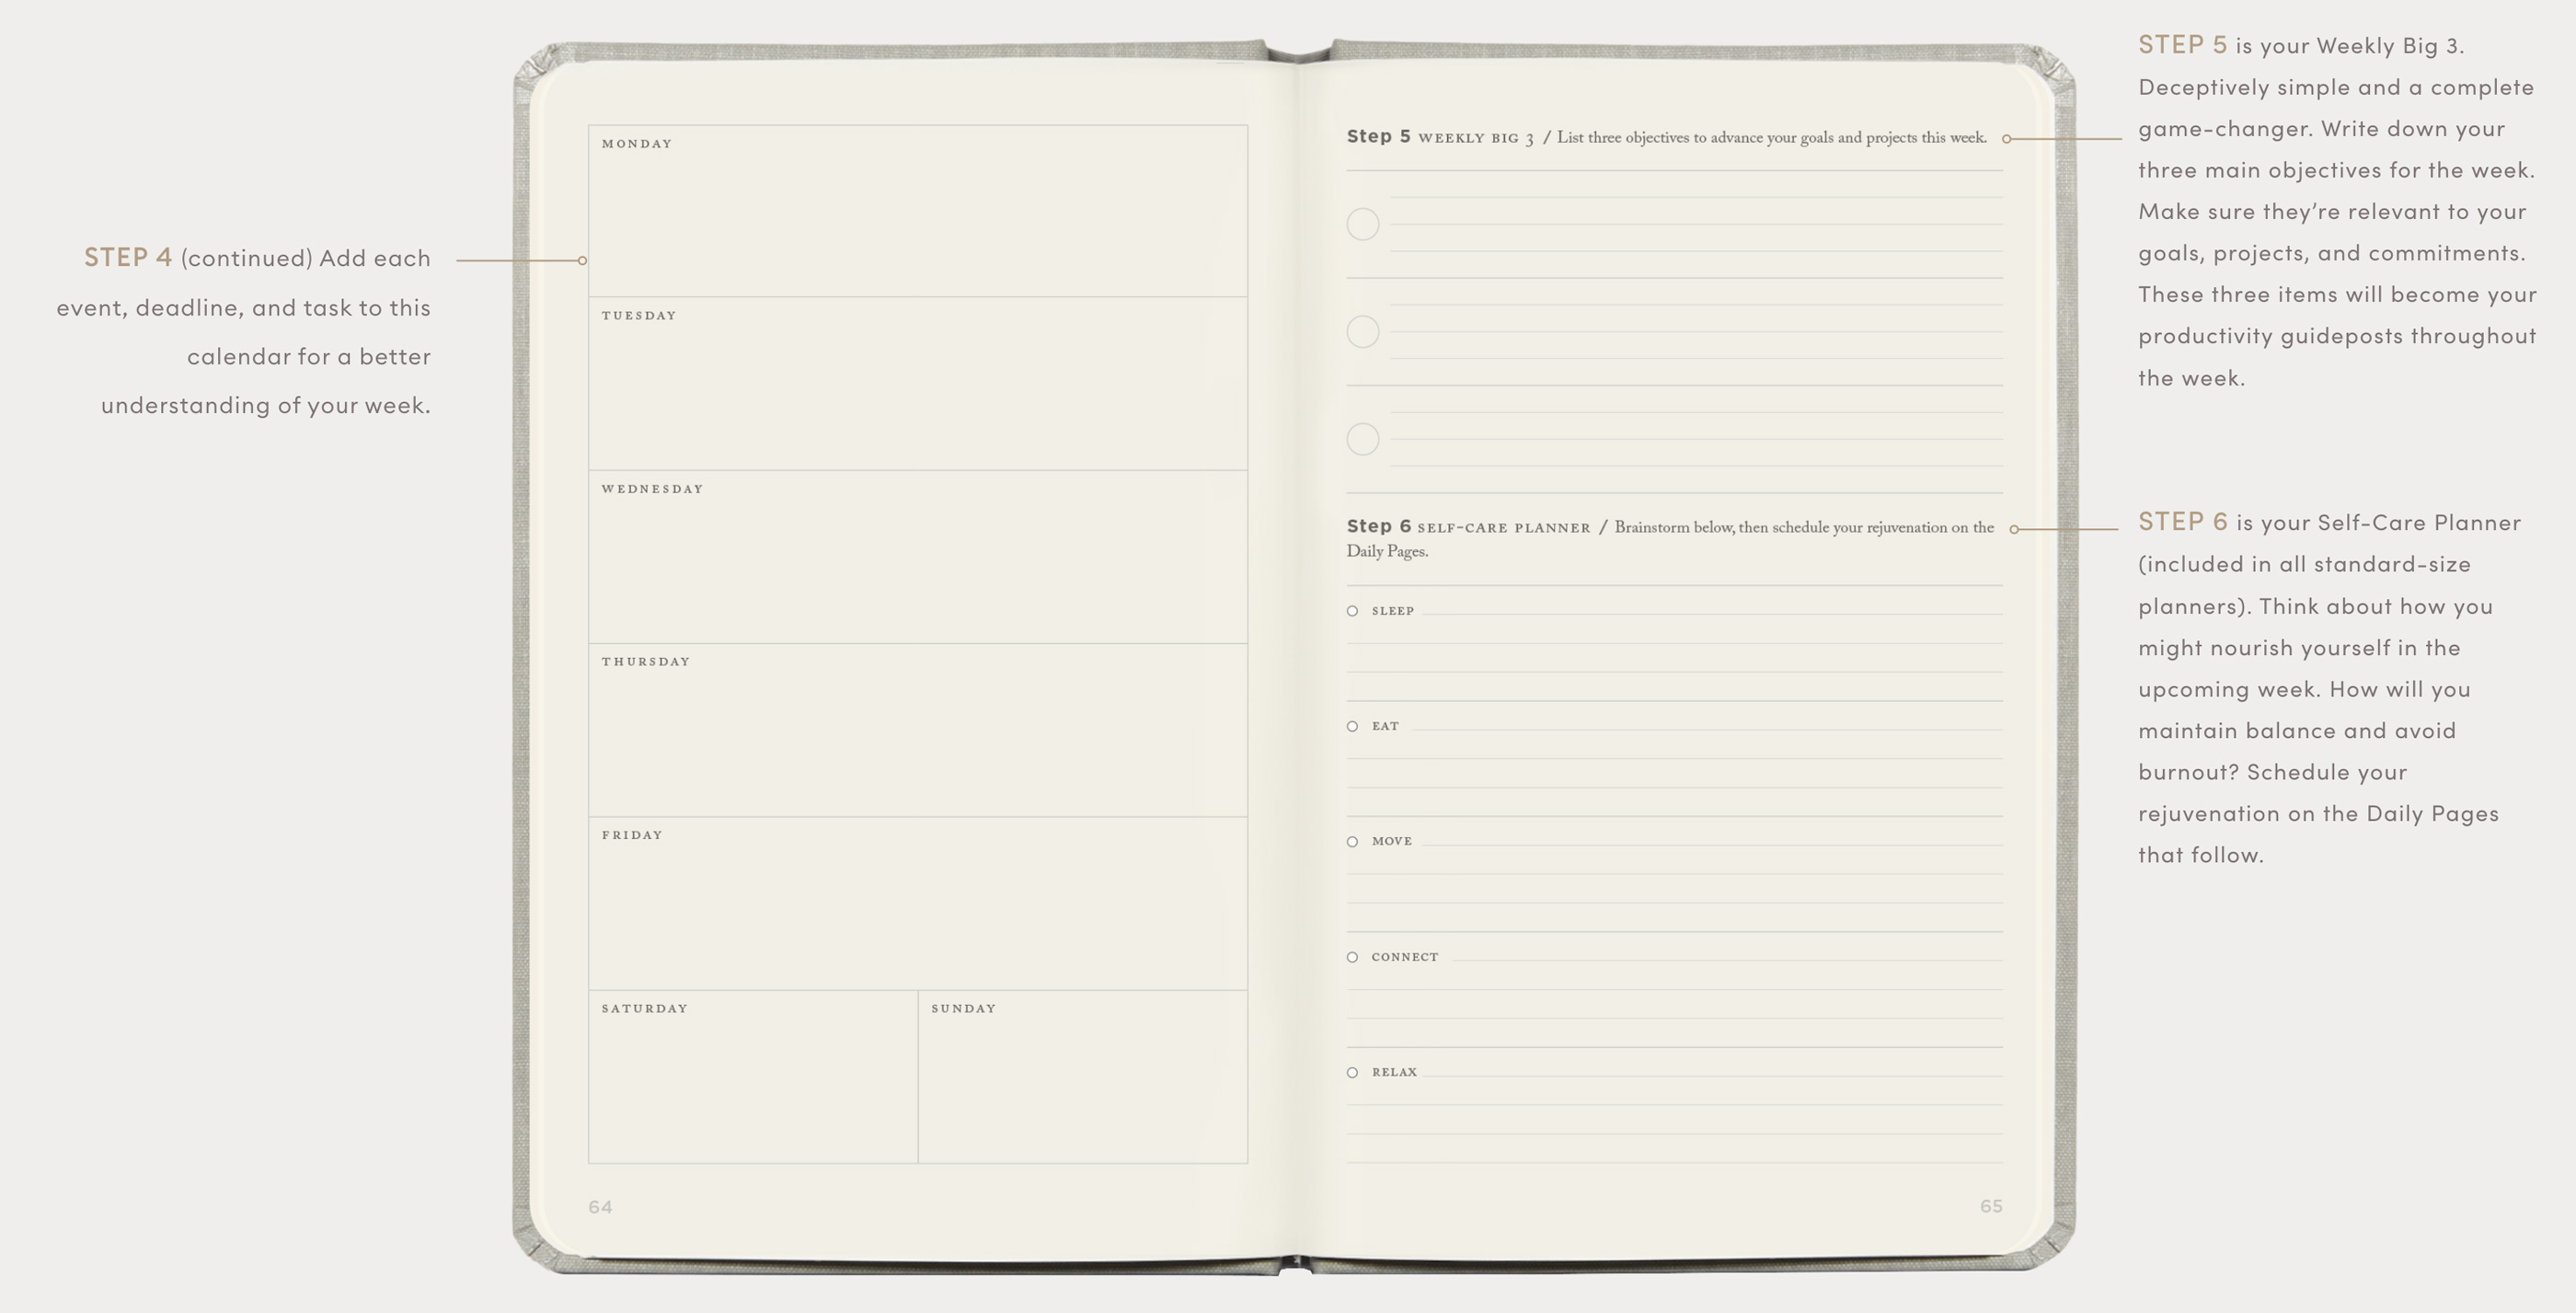 Full Focus Planner weekly preview pages continued